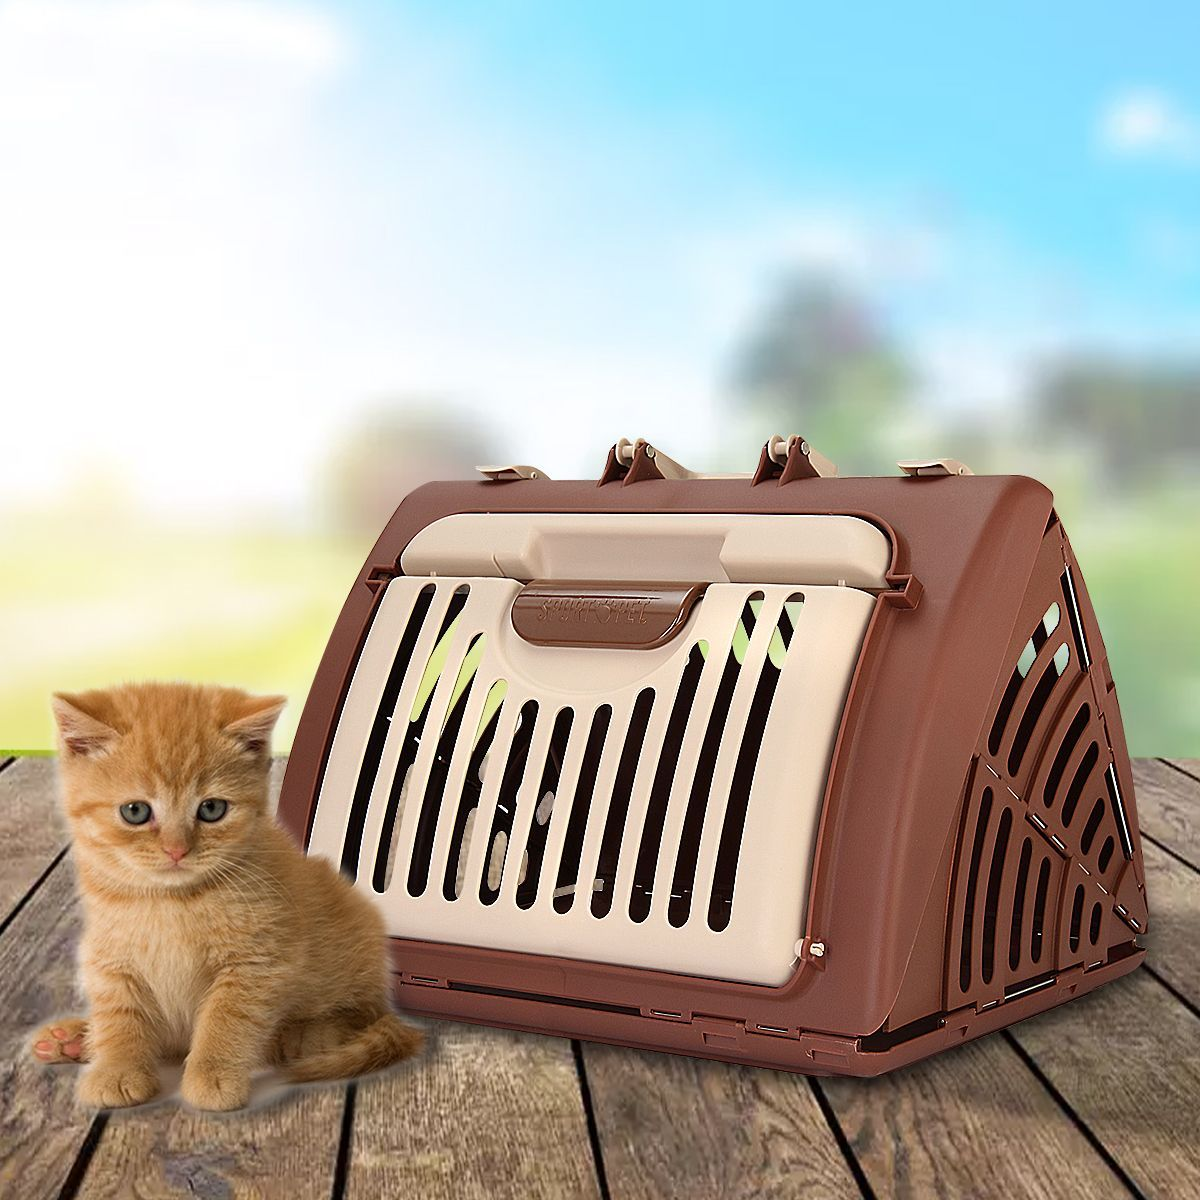 Dog Crate Hard Sided Pet Carrier Foldable Training Kennel Portable Cage House Petcarriers Dog Crate Pet Carriers Cat Pet Supplies